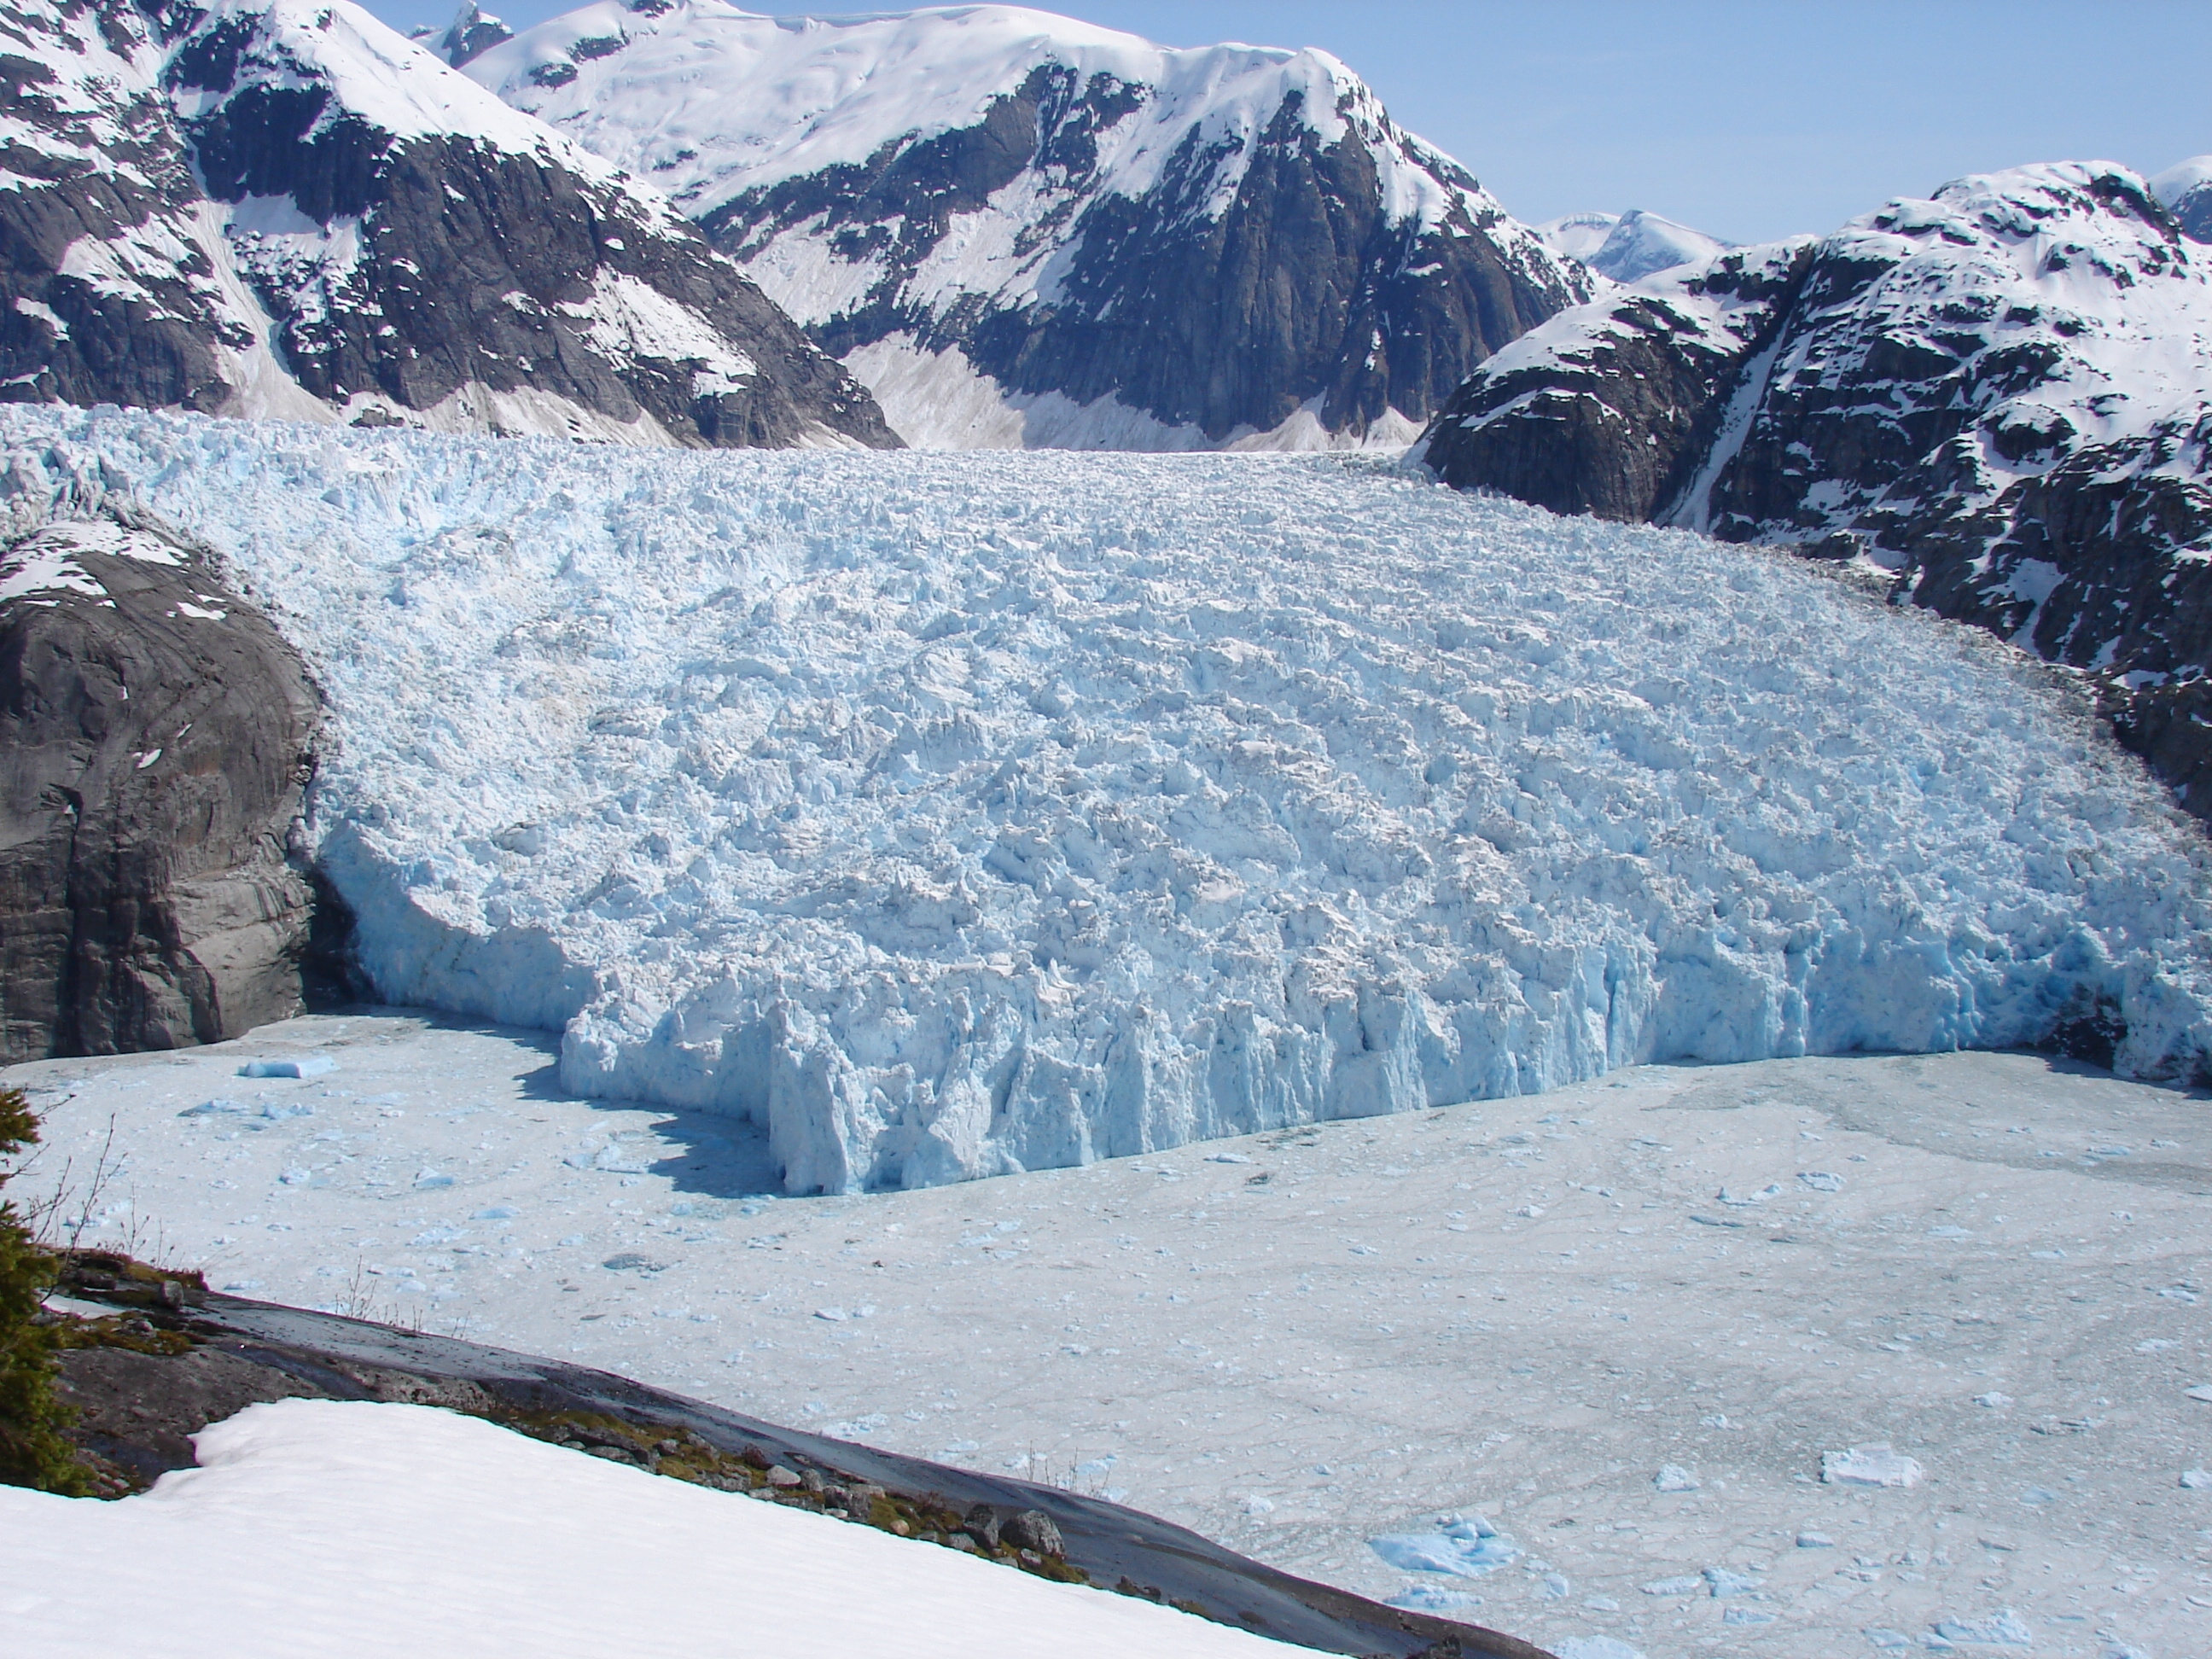 Glacier terminus shows little movement while icefield thins overall